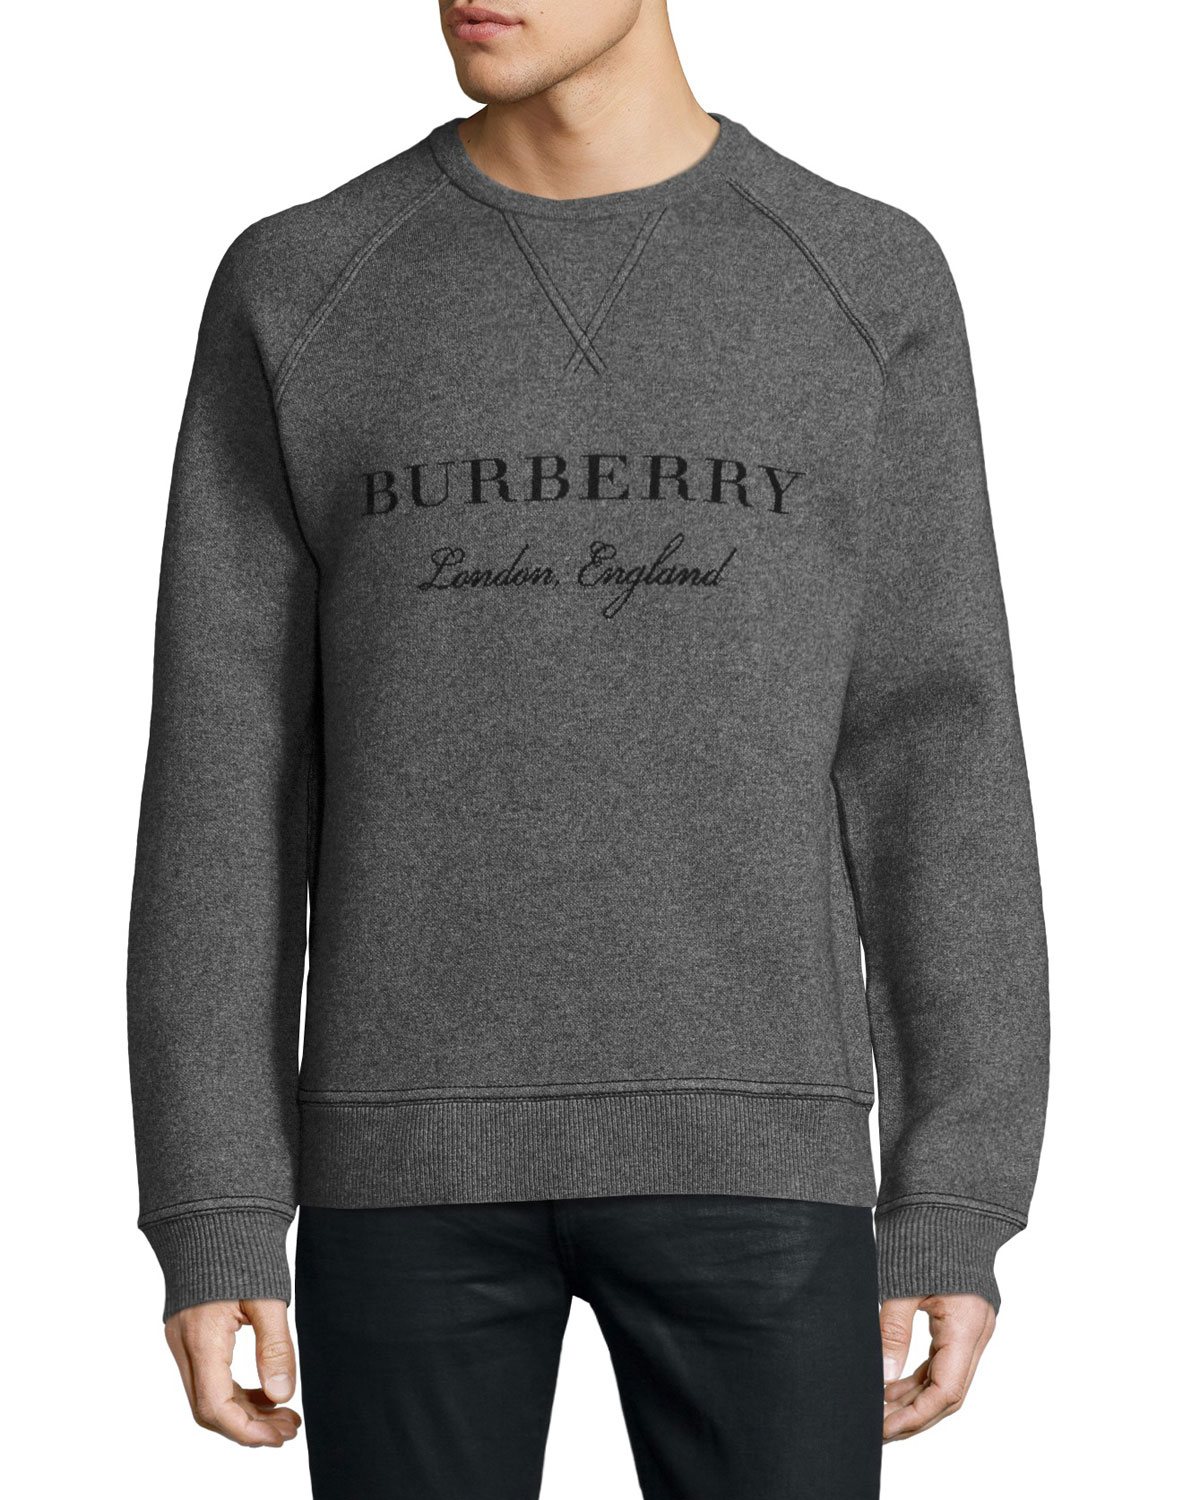 Belsford Wool-Cashmere Logo Sweatshirt, Gray